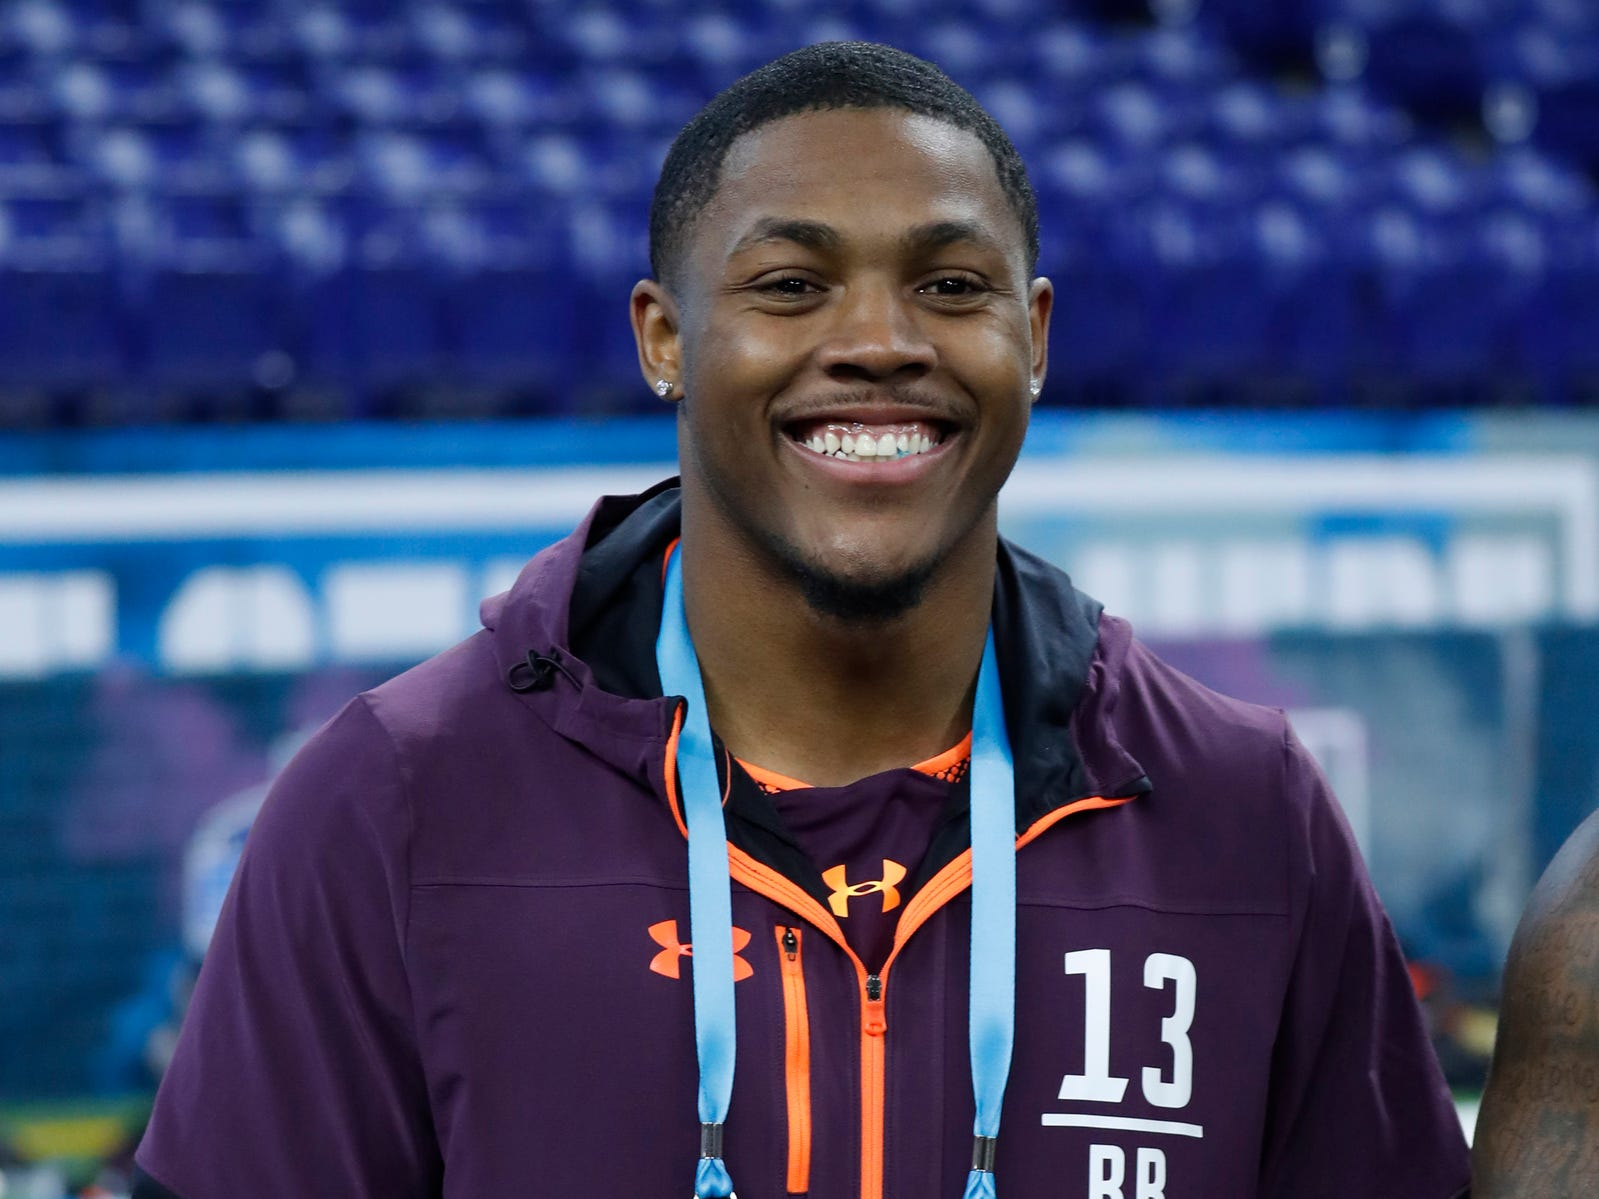 23. Houston Texans: RB Josh Jacobs, Alabama – The Texans ran the ball well last year, but part of that was Deshaun Watson's doing. A versatile back like Jacobs would make their offense complete.